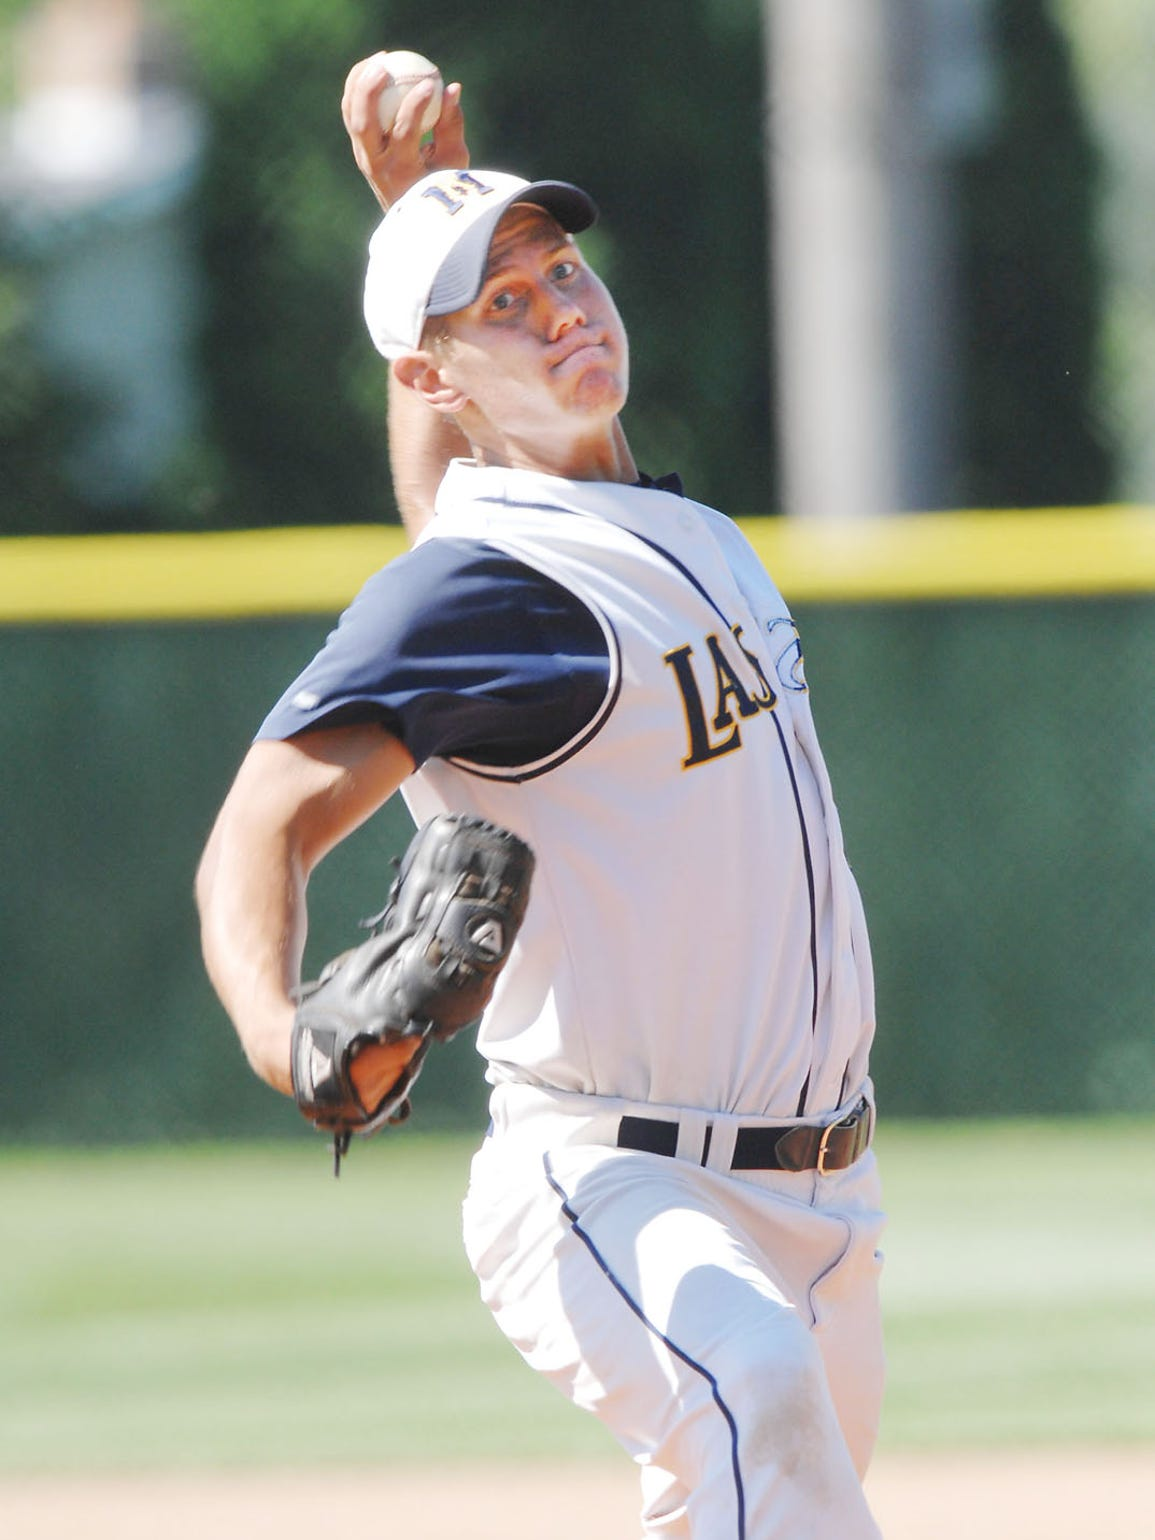 Kettle Moraine's Cody Smith pitches against West Bend West in the 2008 state quarterfinal. Smith pitched a complete game to lead the Lasers past the defending state champions, 4-1. Kettle Moraine advanced to the state title game that year.